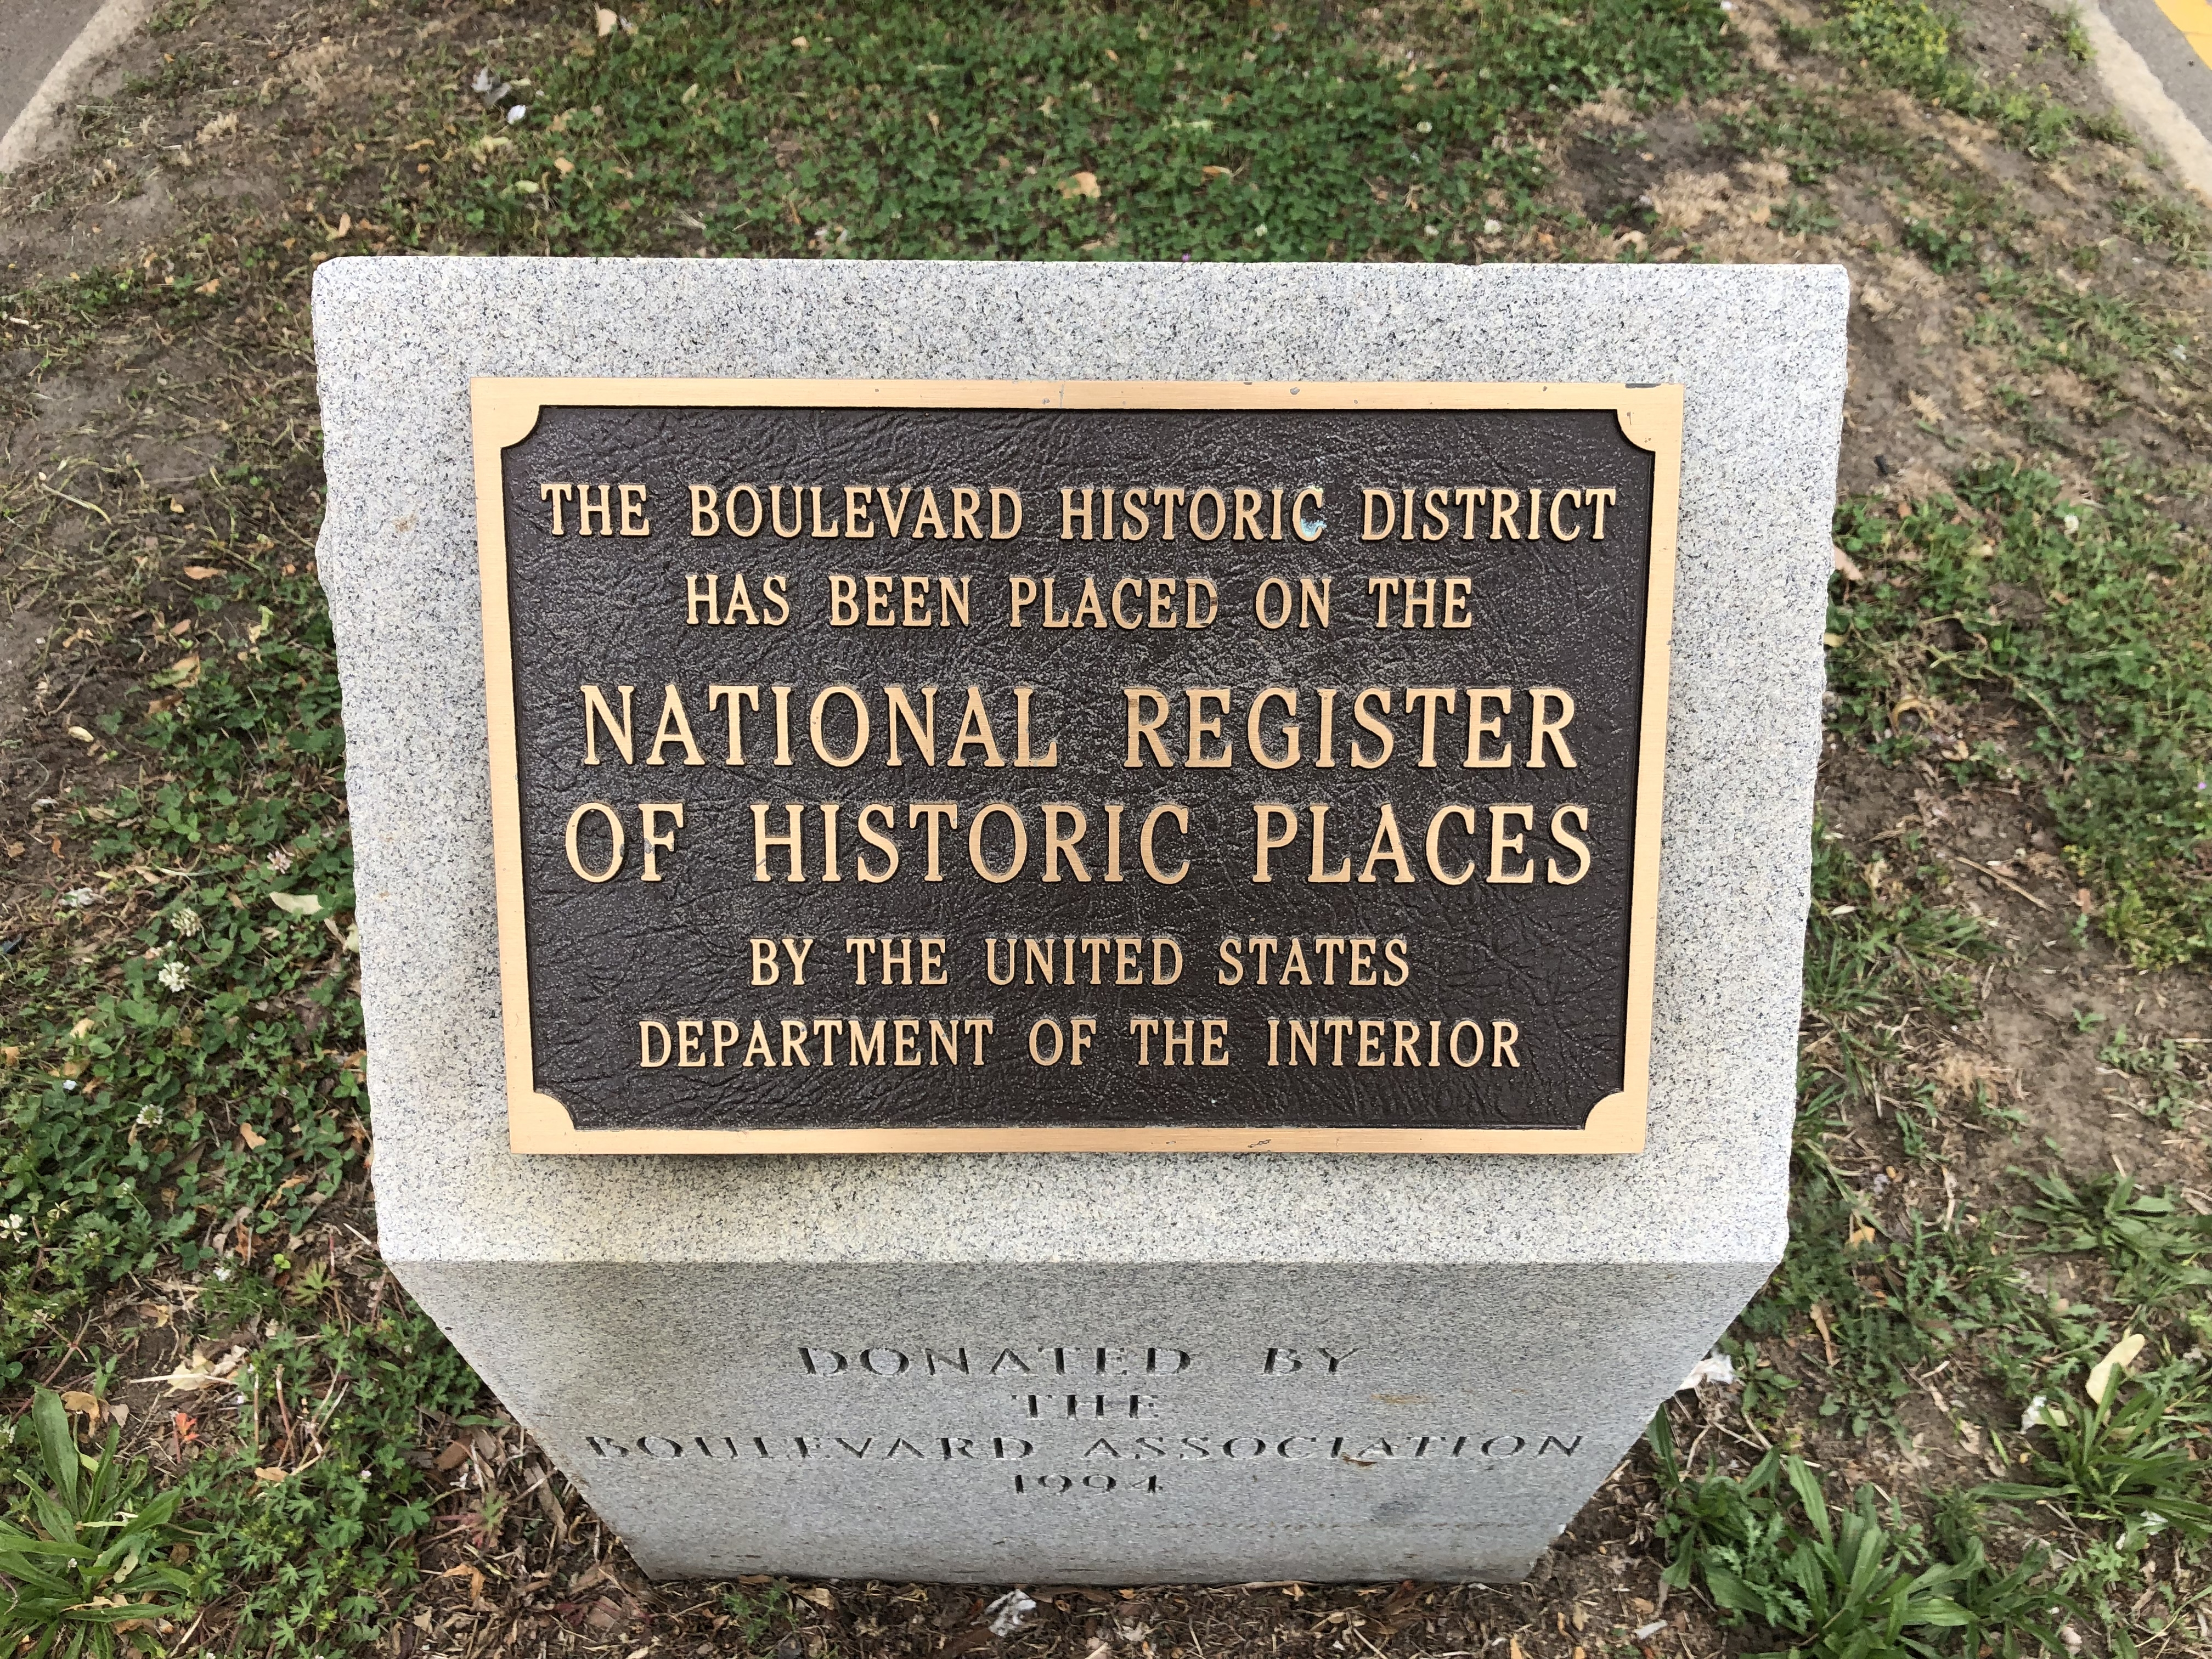 The Boulevard Historic District Marker